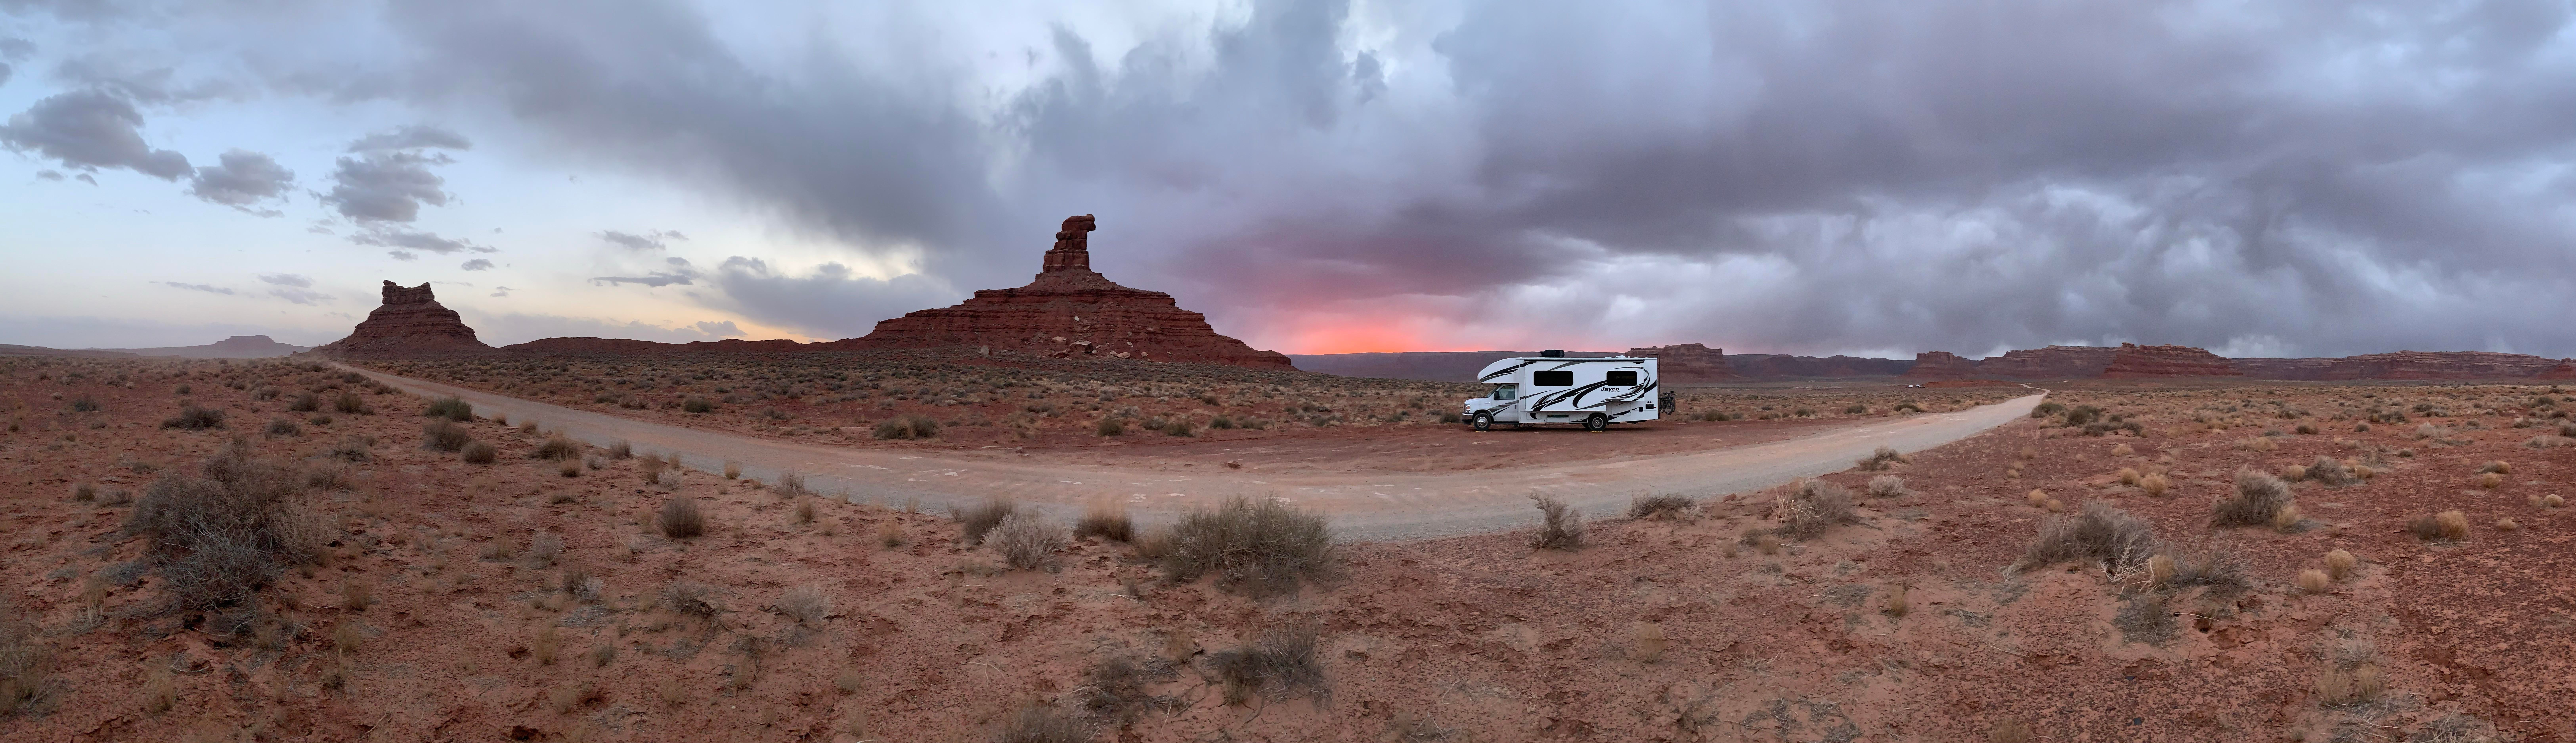 Boondocking in the Valley of the Gods, Utah